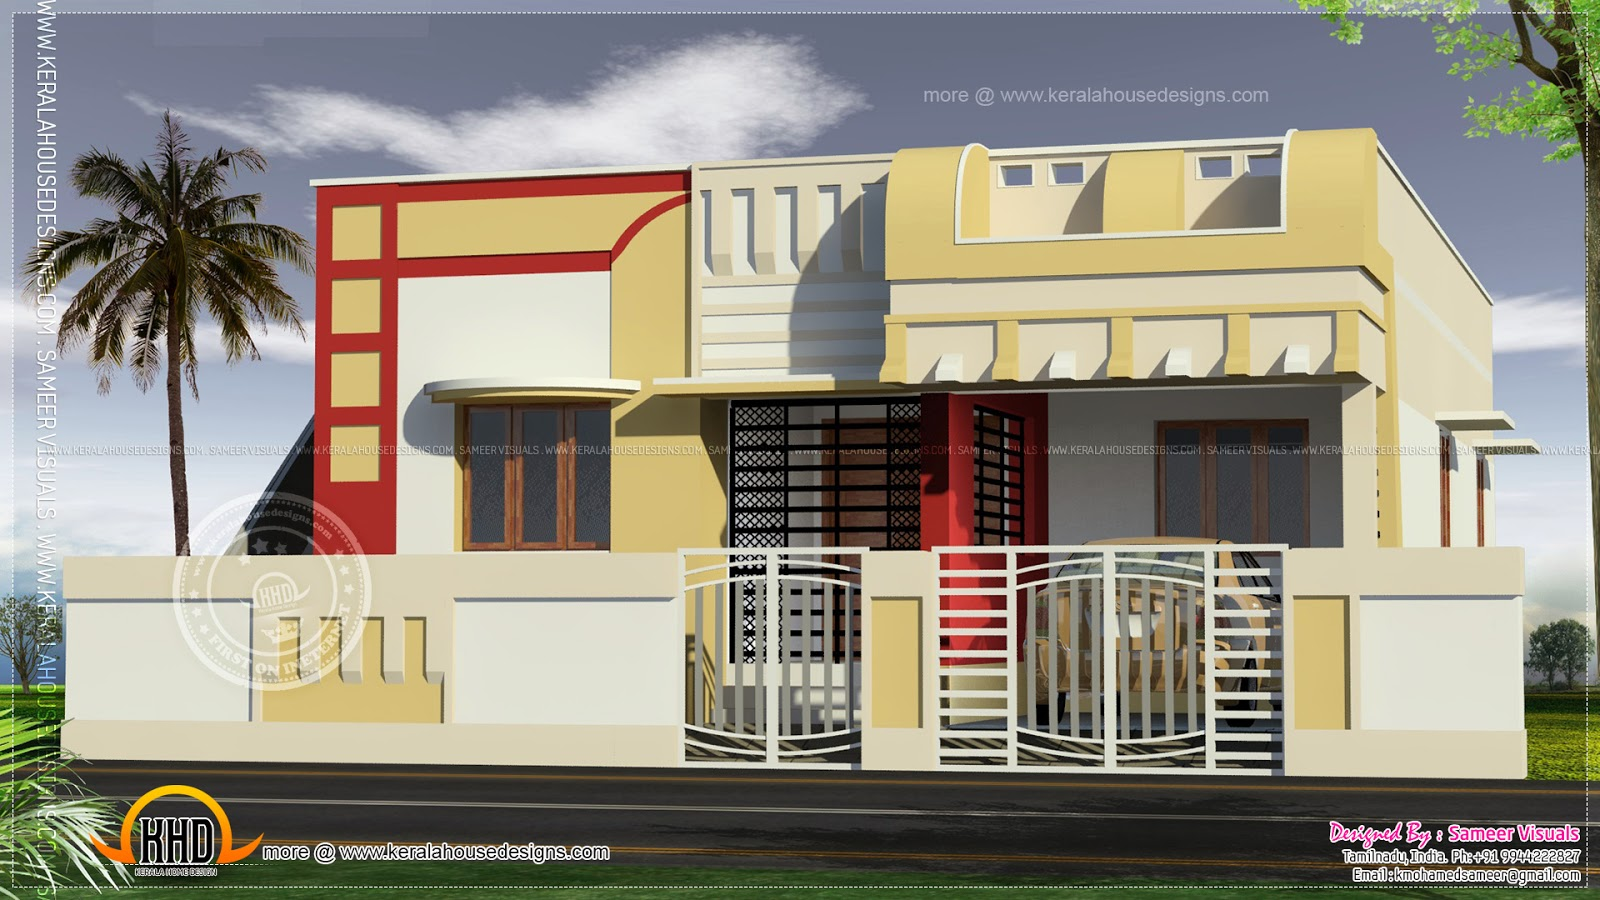 Small south indian home design kerala home design and for Indian small house design 2 bedroom